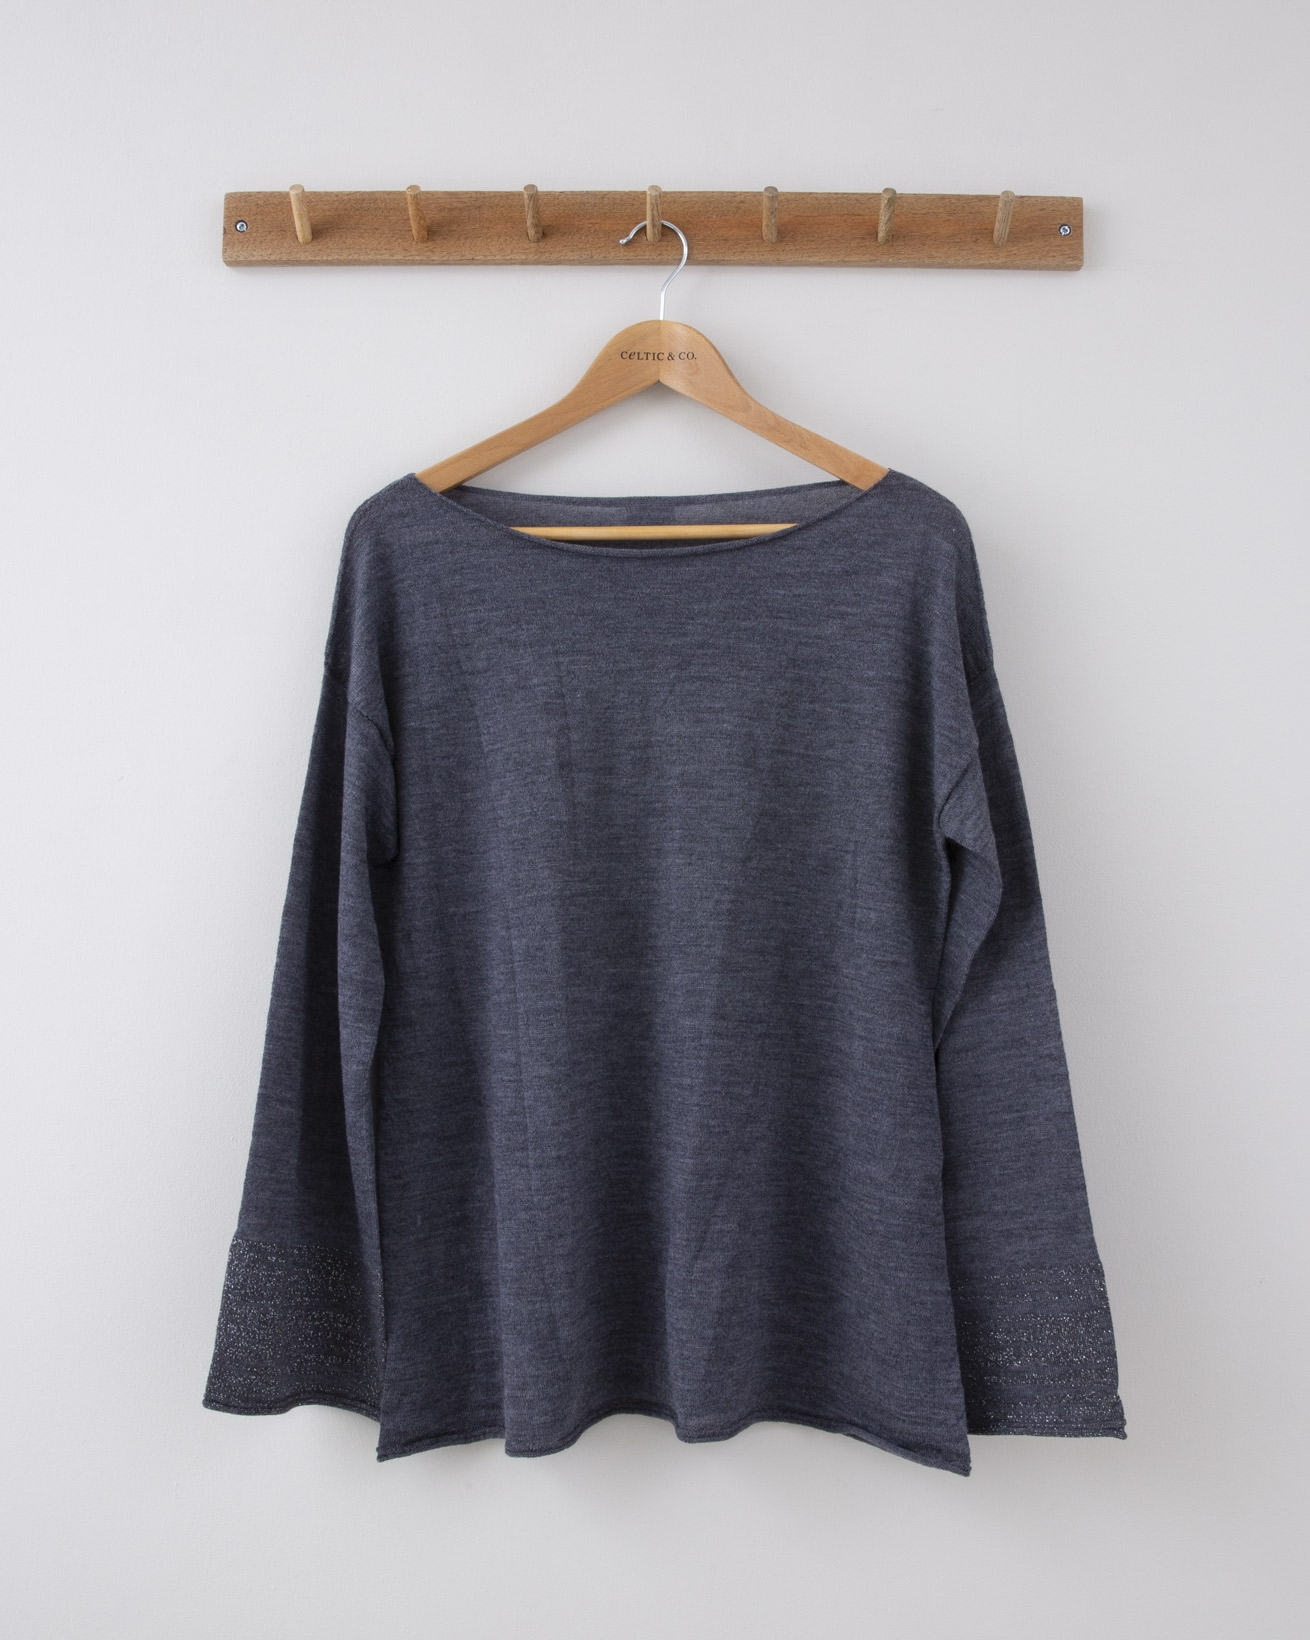 Fine Knit Merino Crew Neck - Small - Derby Grey with Metallic Cuffs - 1269